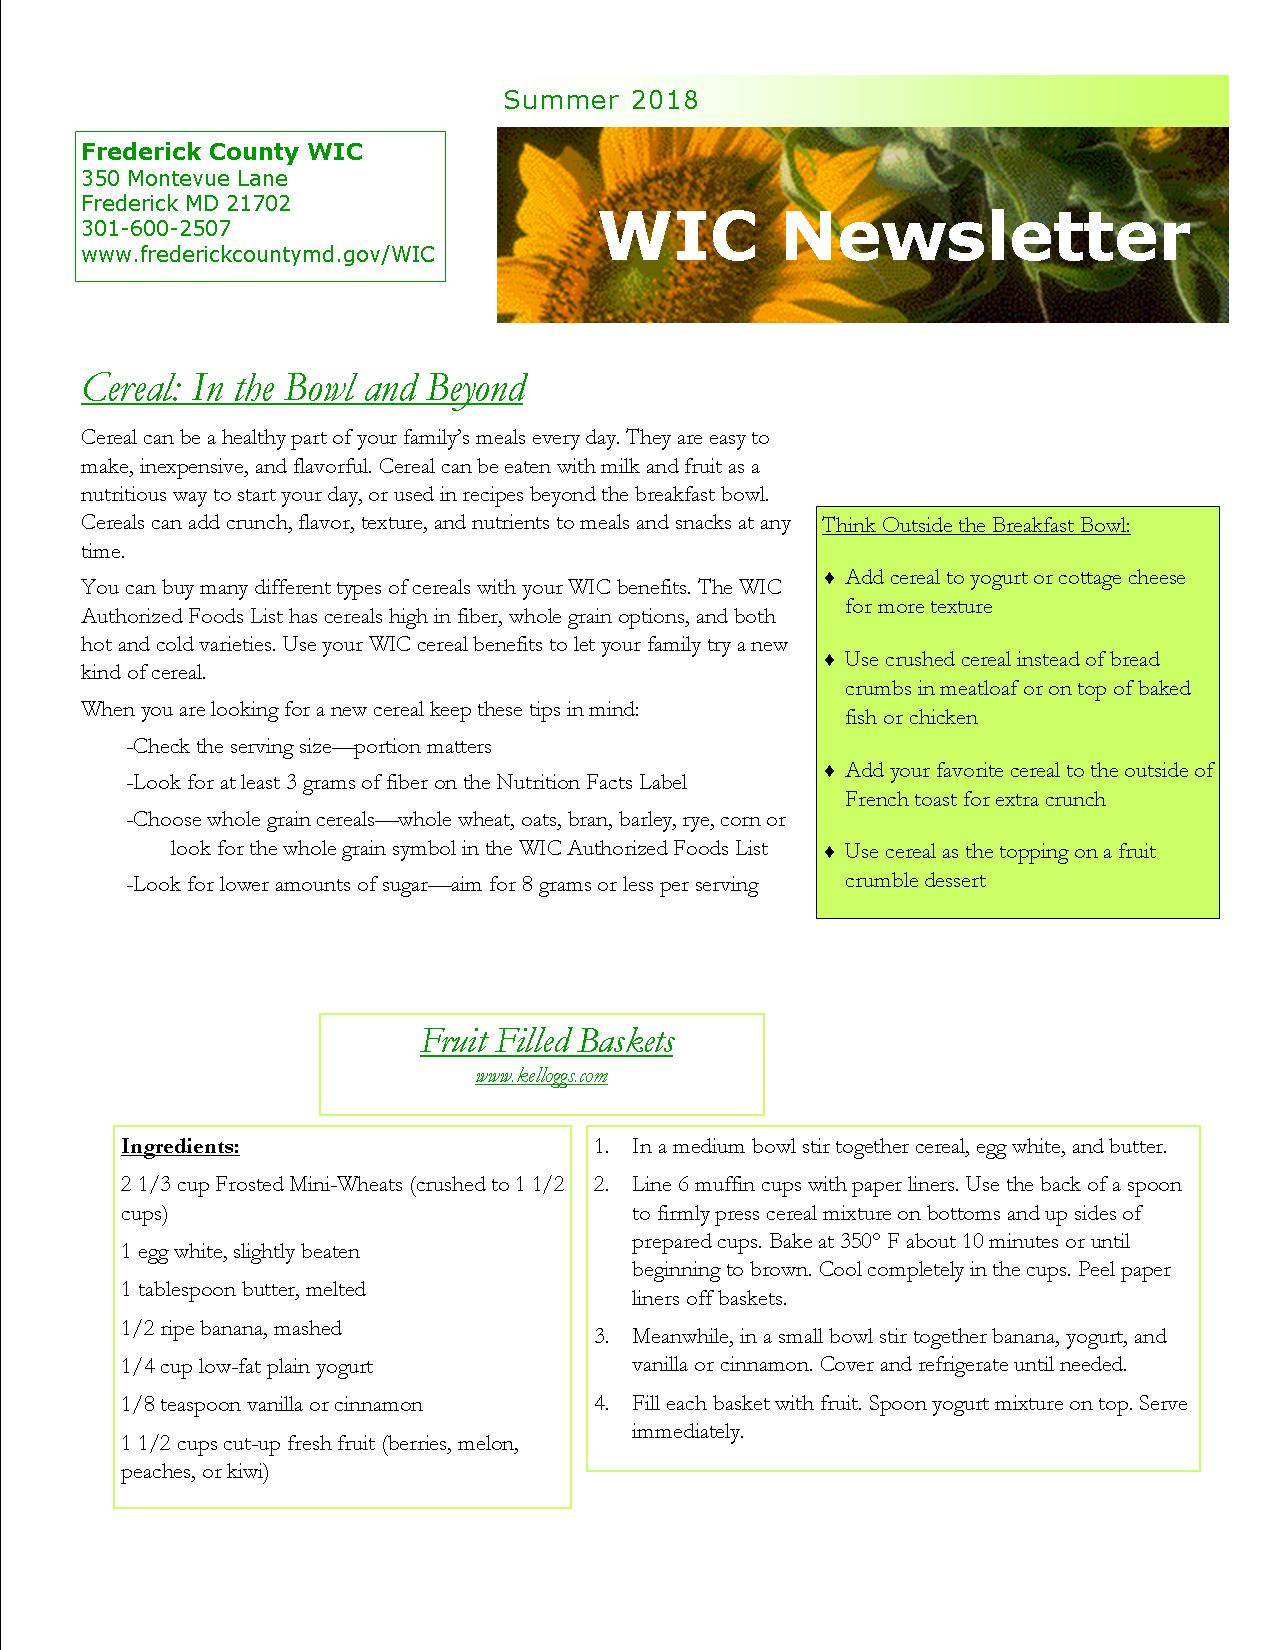 Picture of Summer 2018 Newsletter first page, link to the full text at the bottom of the page